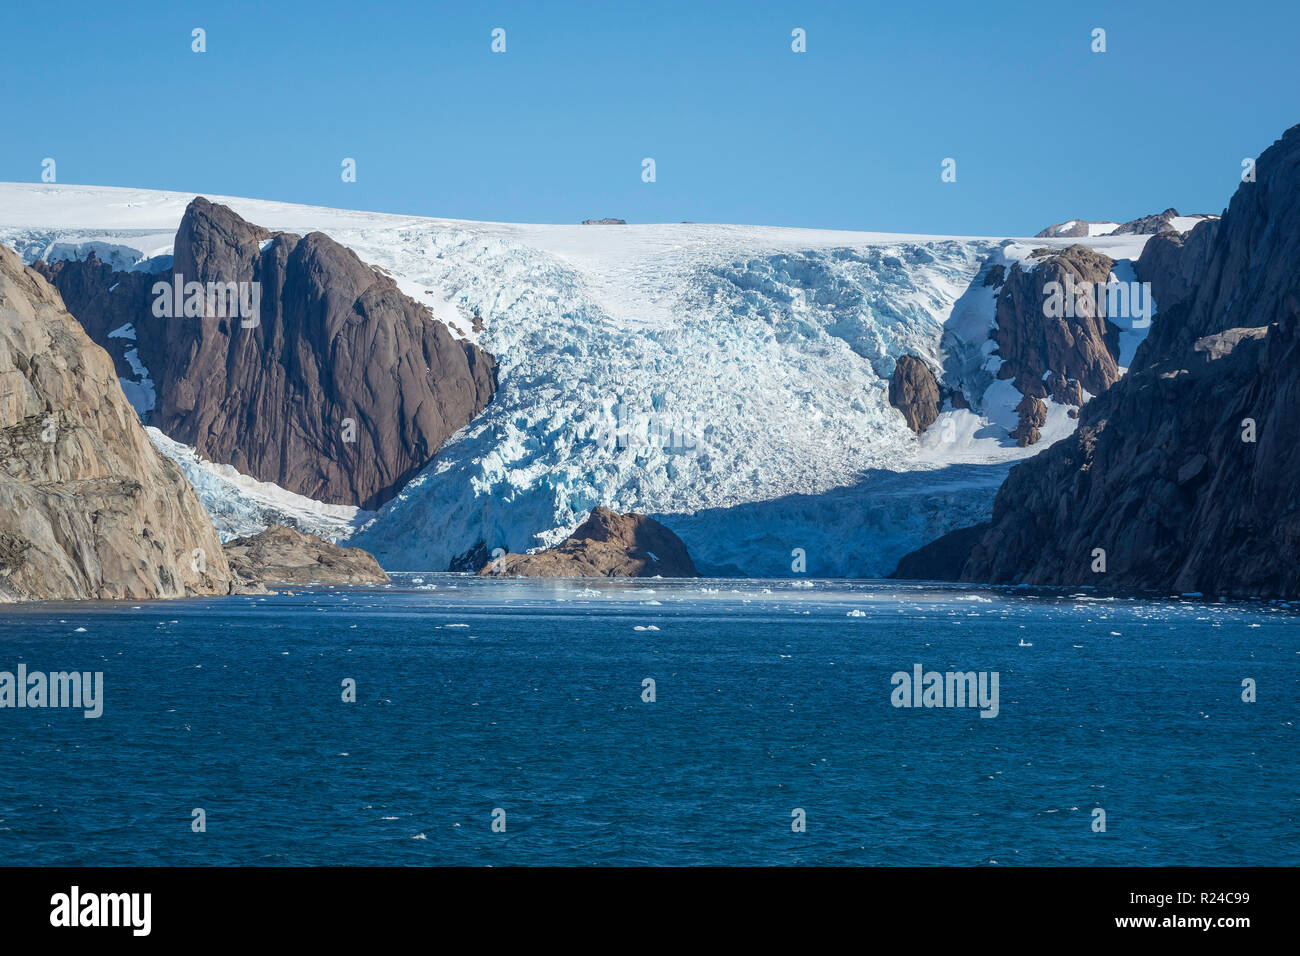 Glacier, Prince Christian Sound, southern Greenland, Polar Regions - Stock Image